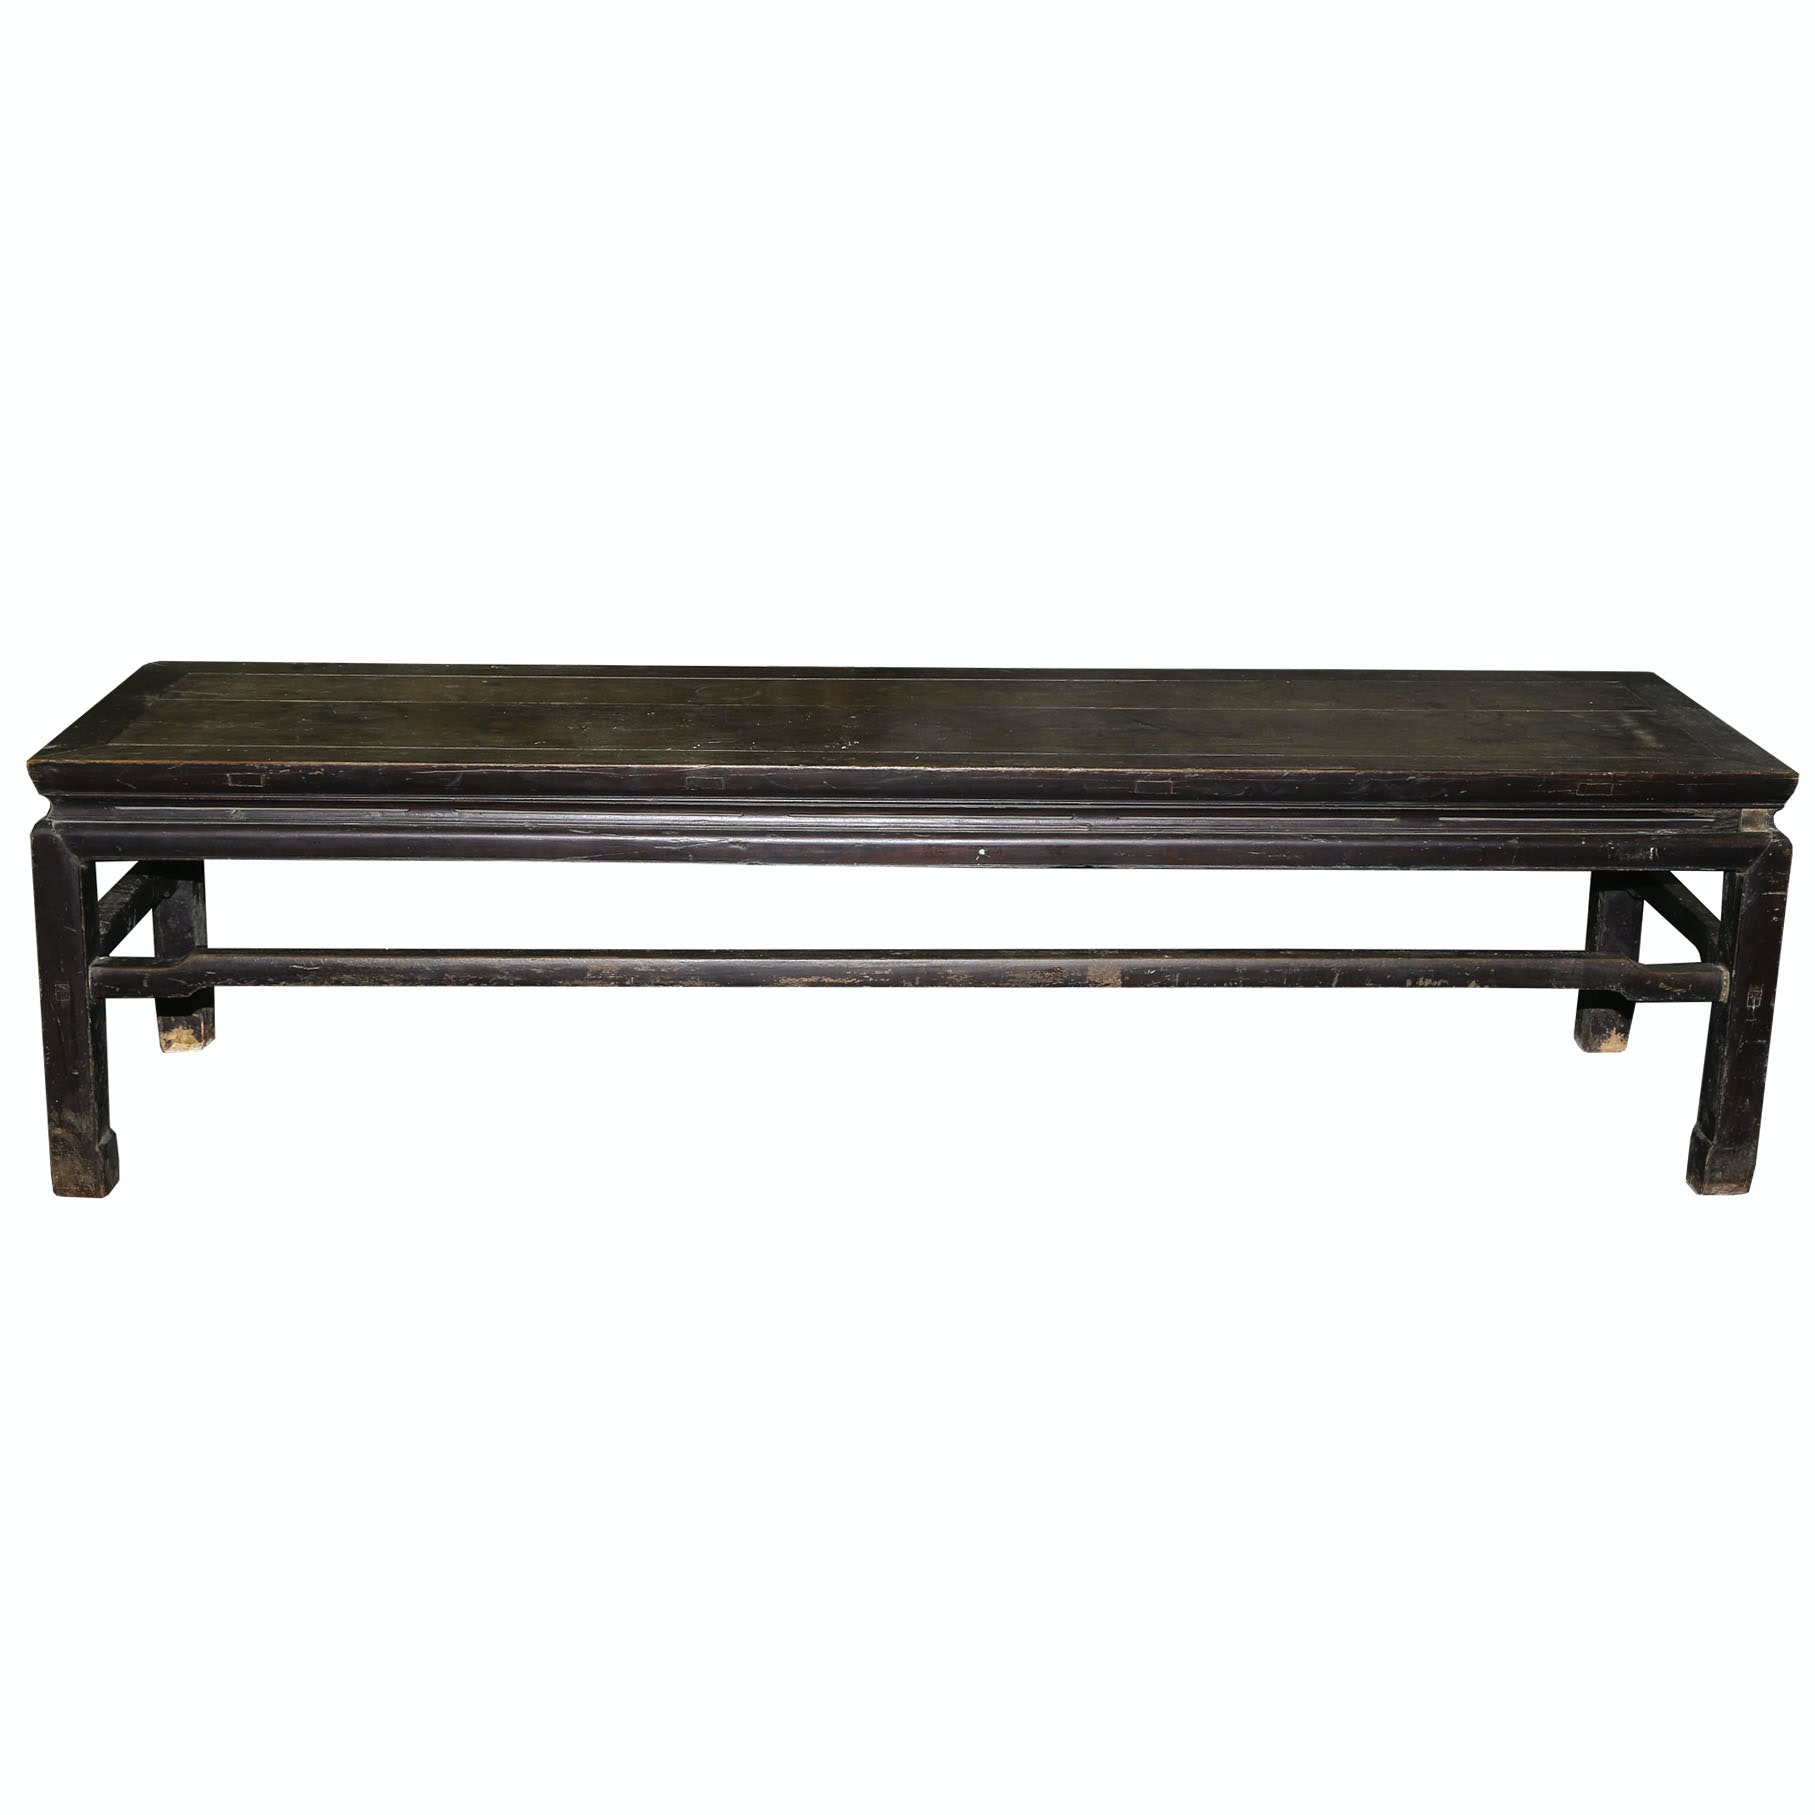 Vintage Chinese Bench